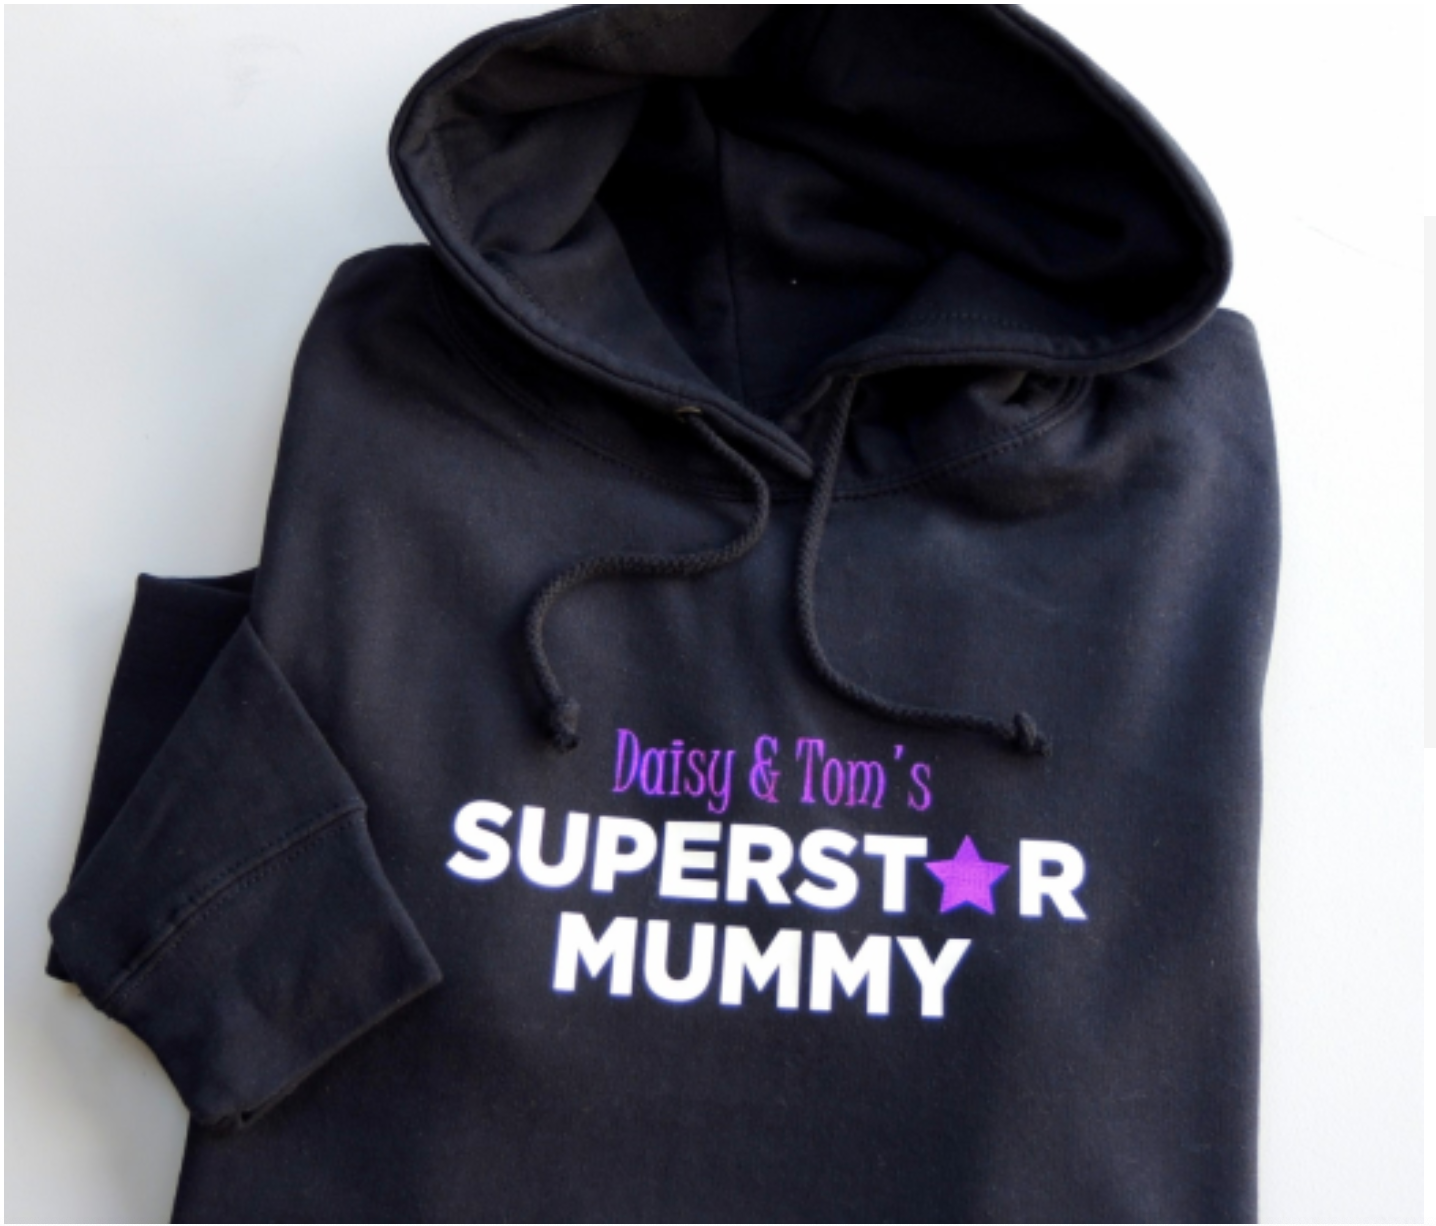 Above: The personalisable hoodie was the best selling Mother's Day product for The Alphabet Gift Shops.